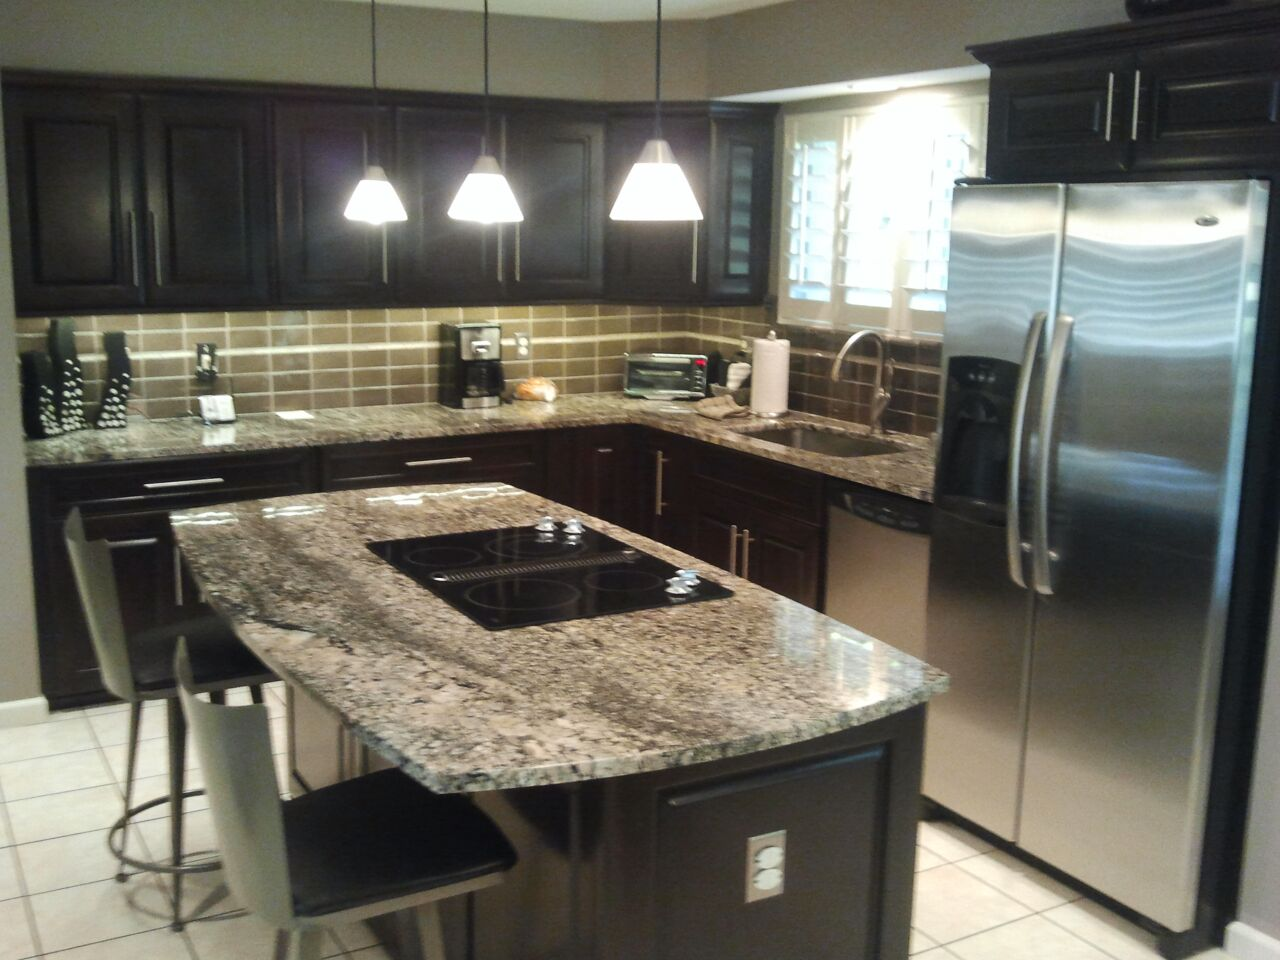 Cabinet Refacing St. Louis MO